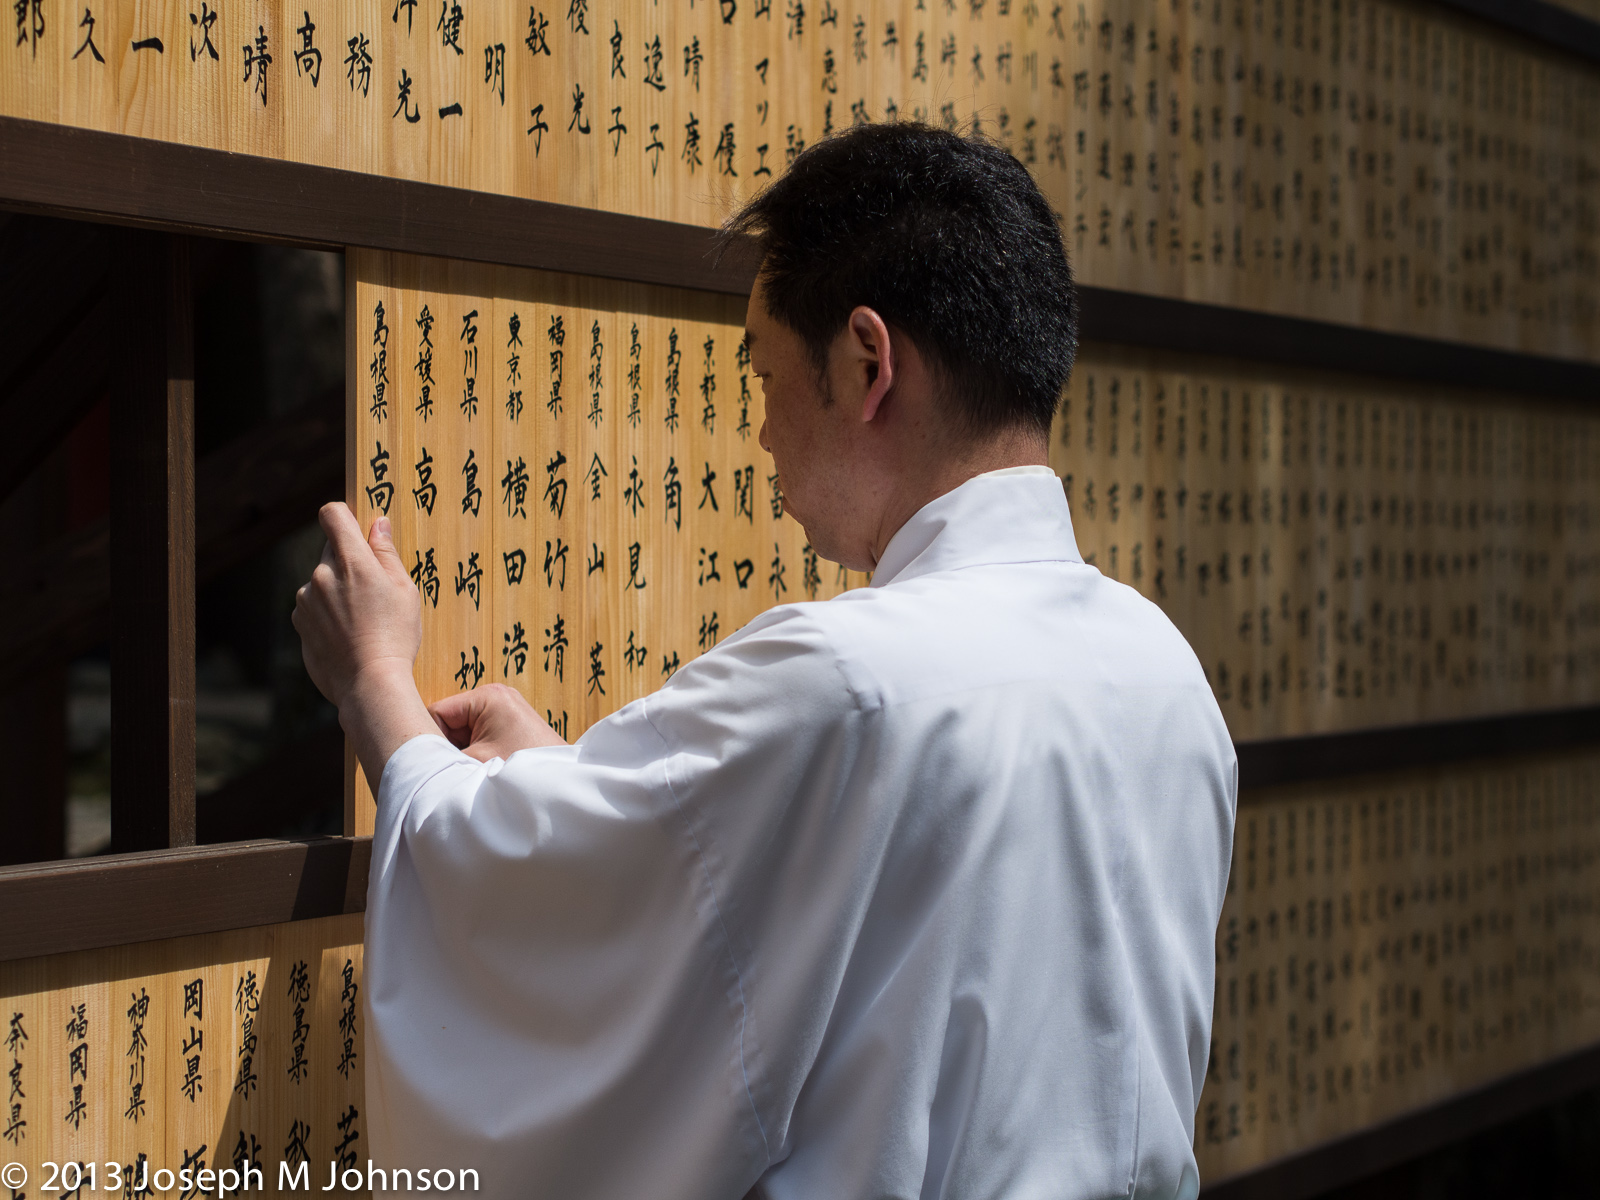 Shinto Priest rearranges names at donor wall in Izumo